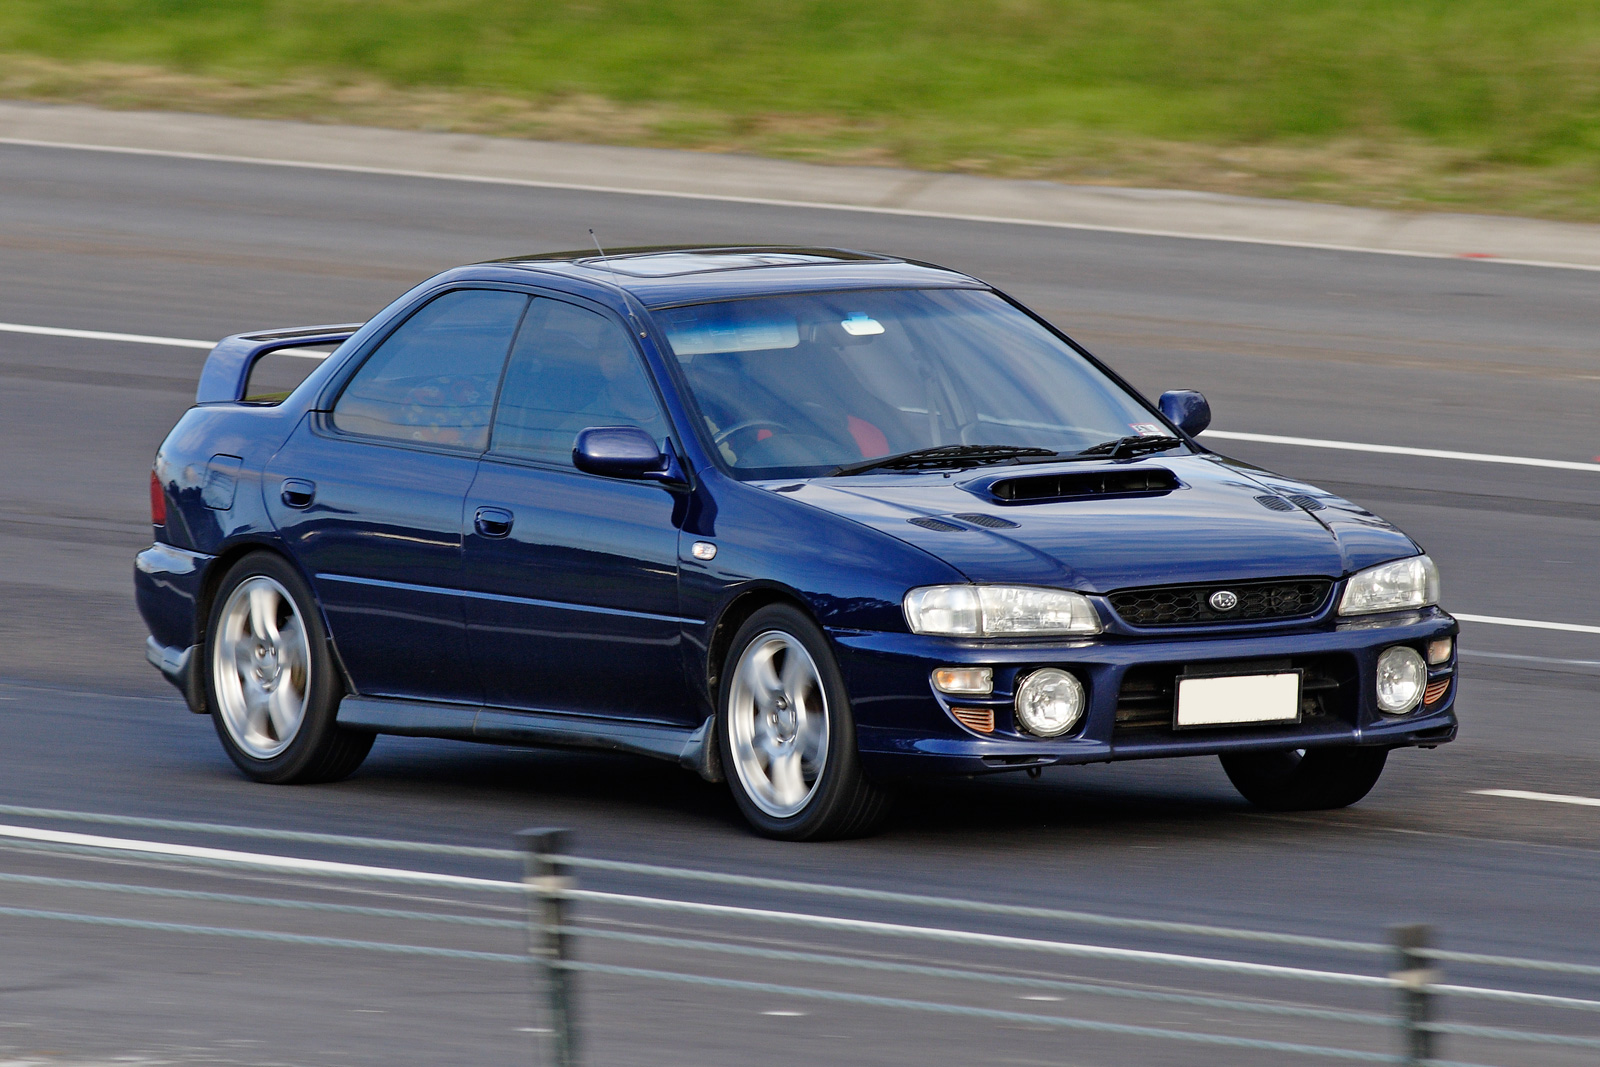 Subaru Impreza 1990 Review Amazing Pictures And Images